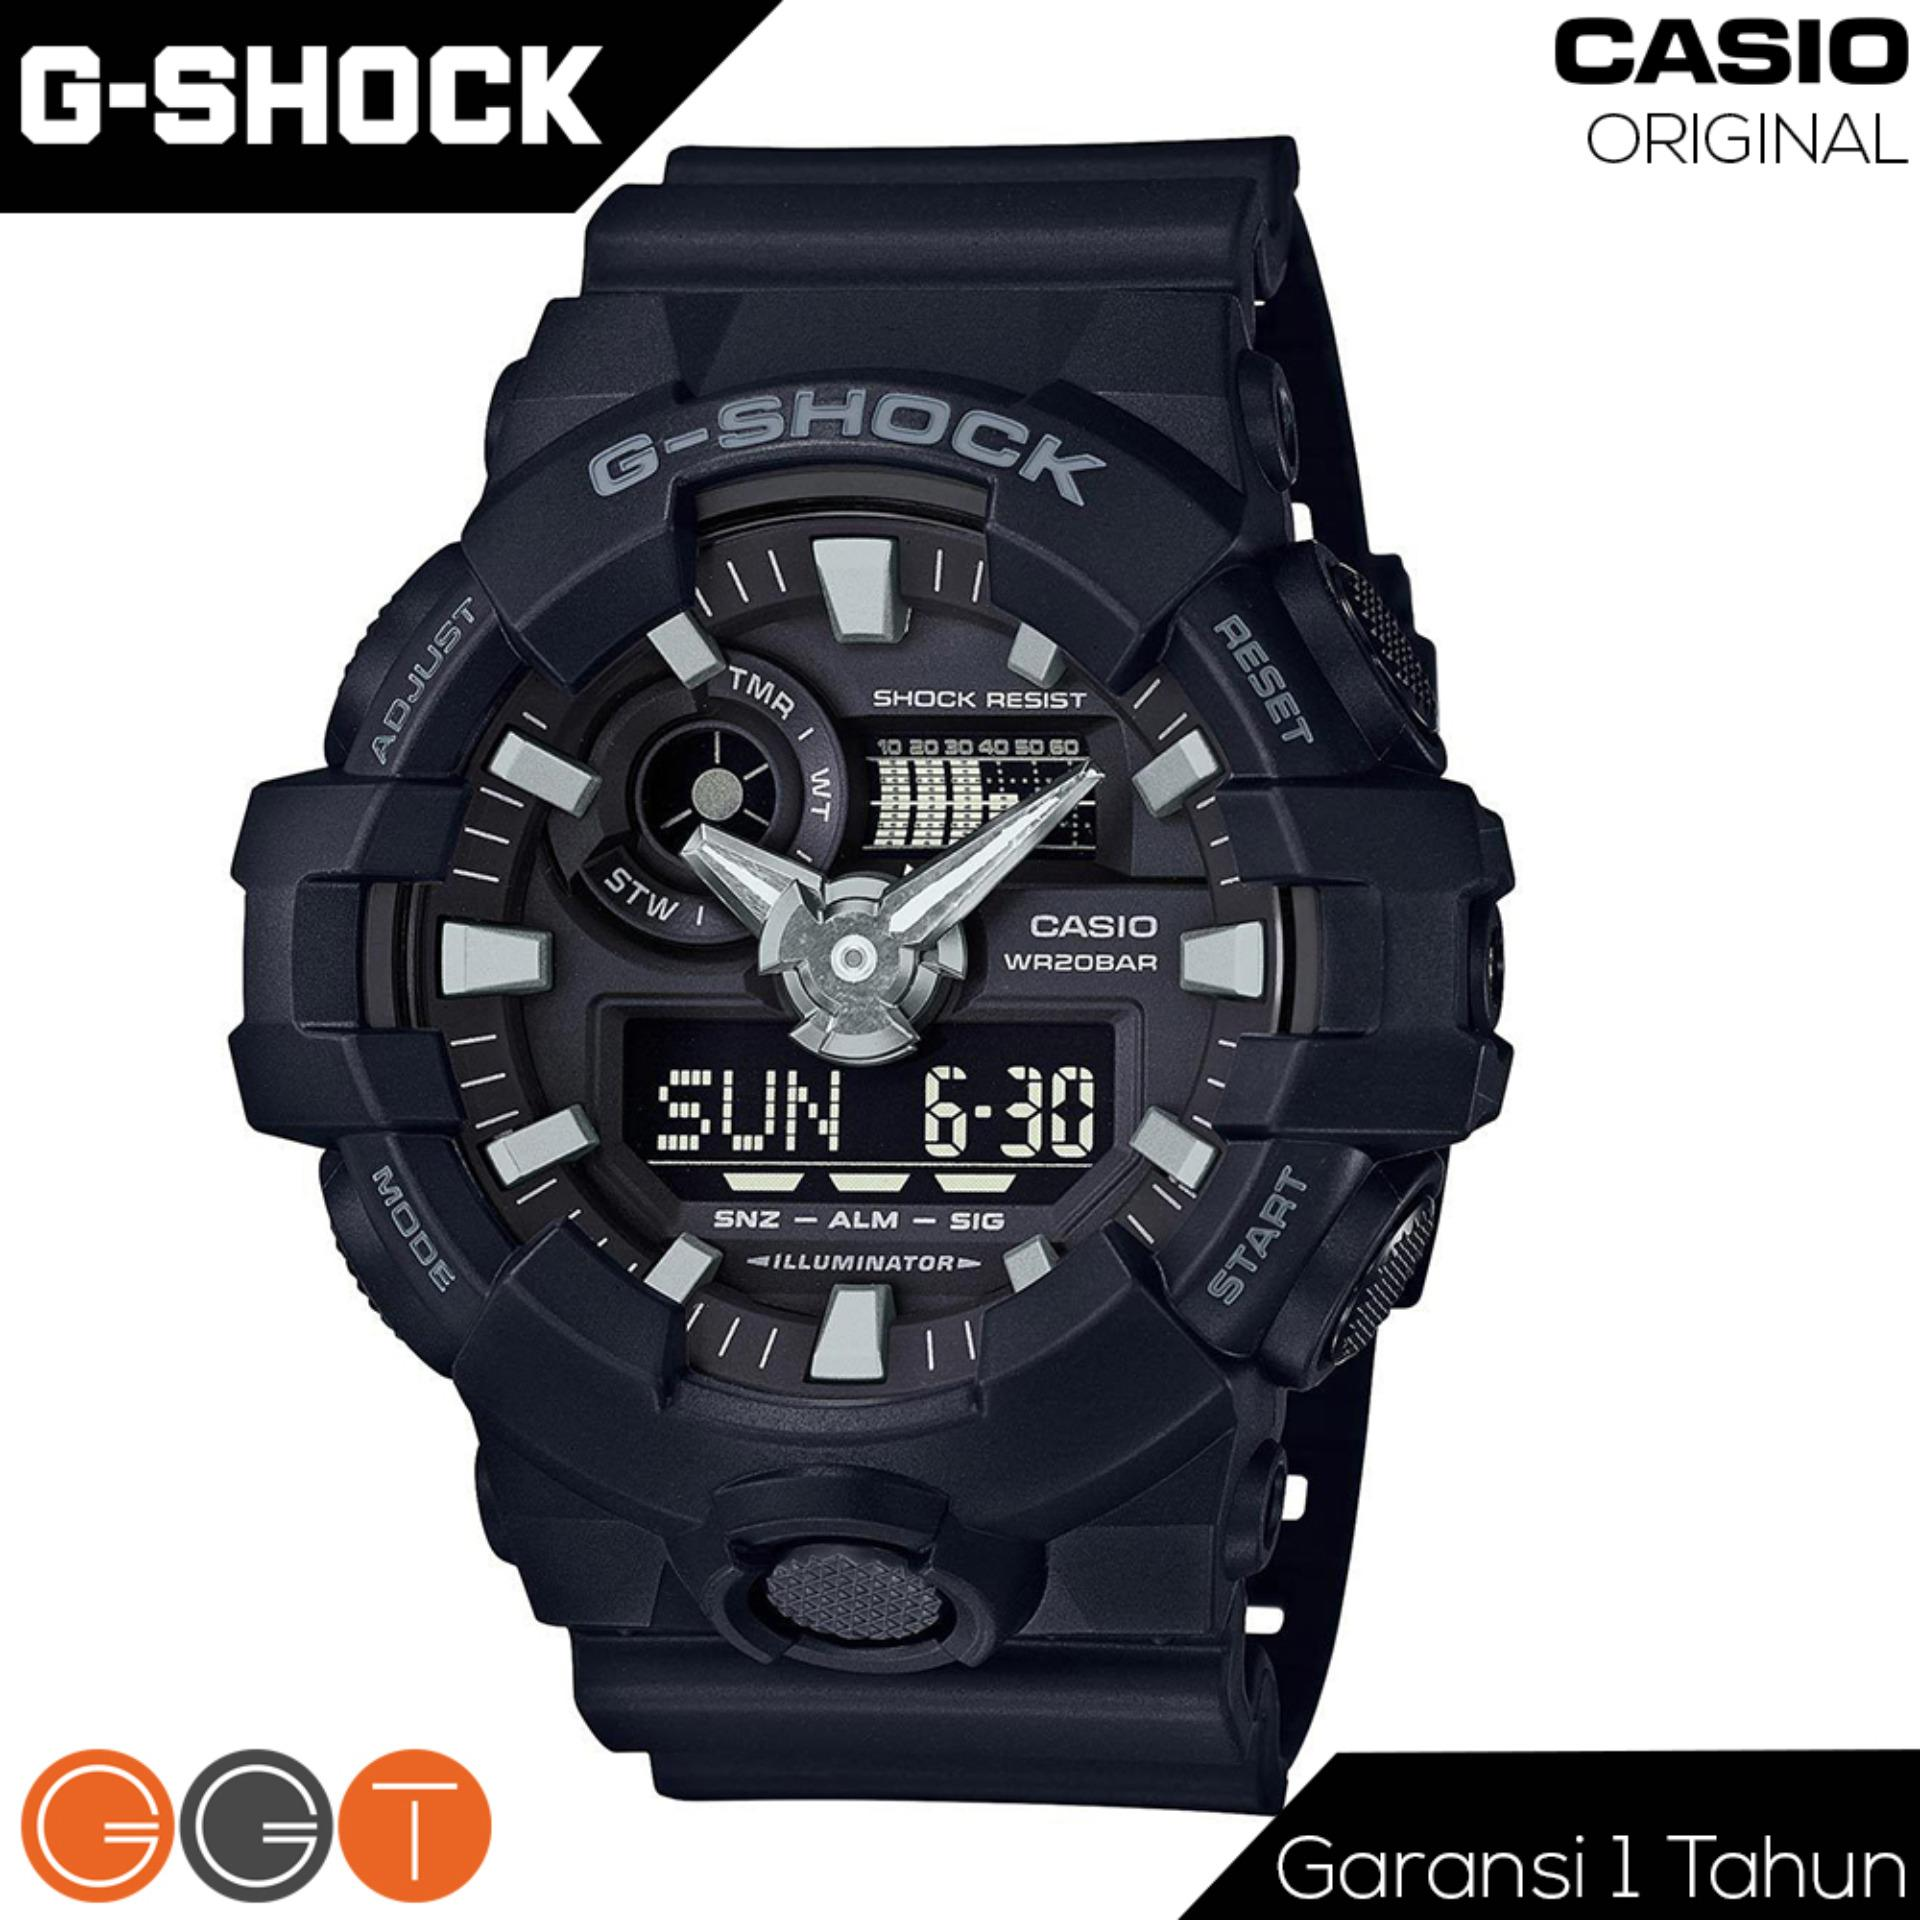 Spesifikasi Casio G Shock Dual Time Resin Starp Quartz Movement Jam Tangan Pria Ga 700 1B Full Black Murah